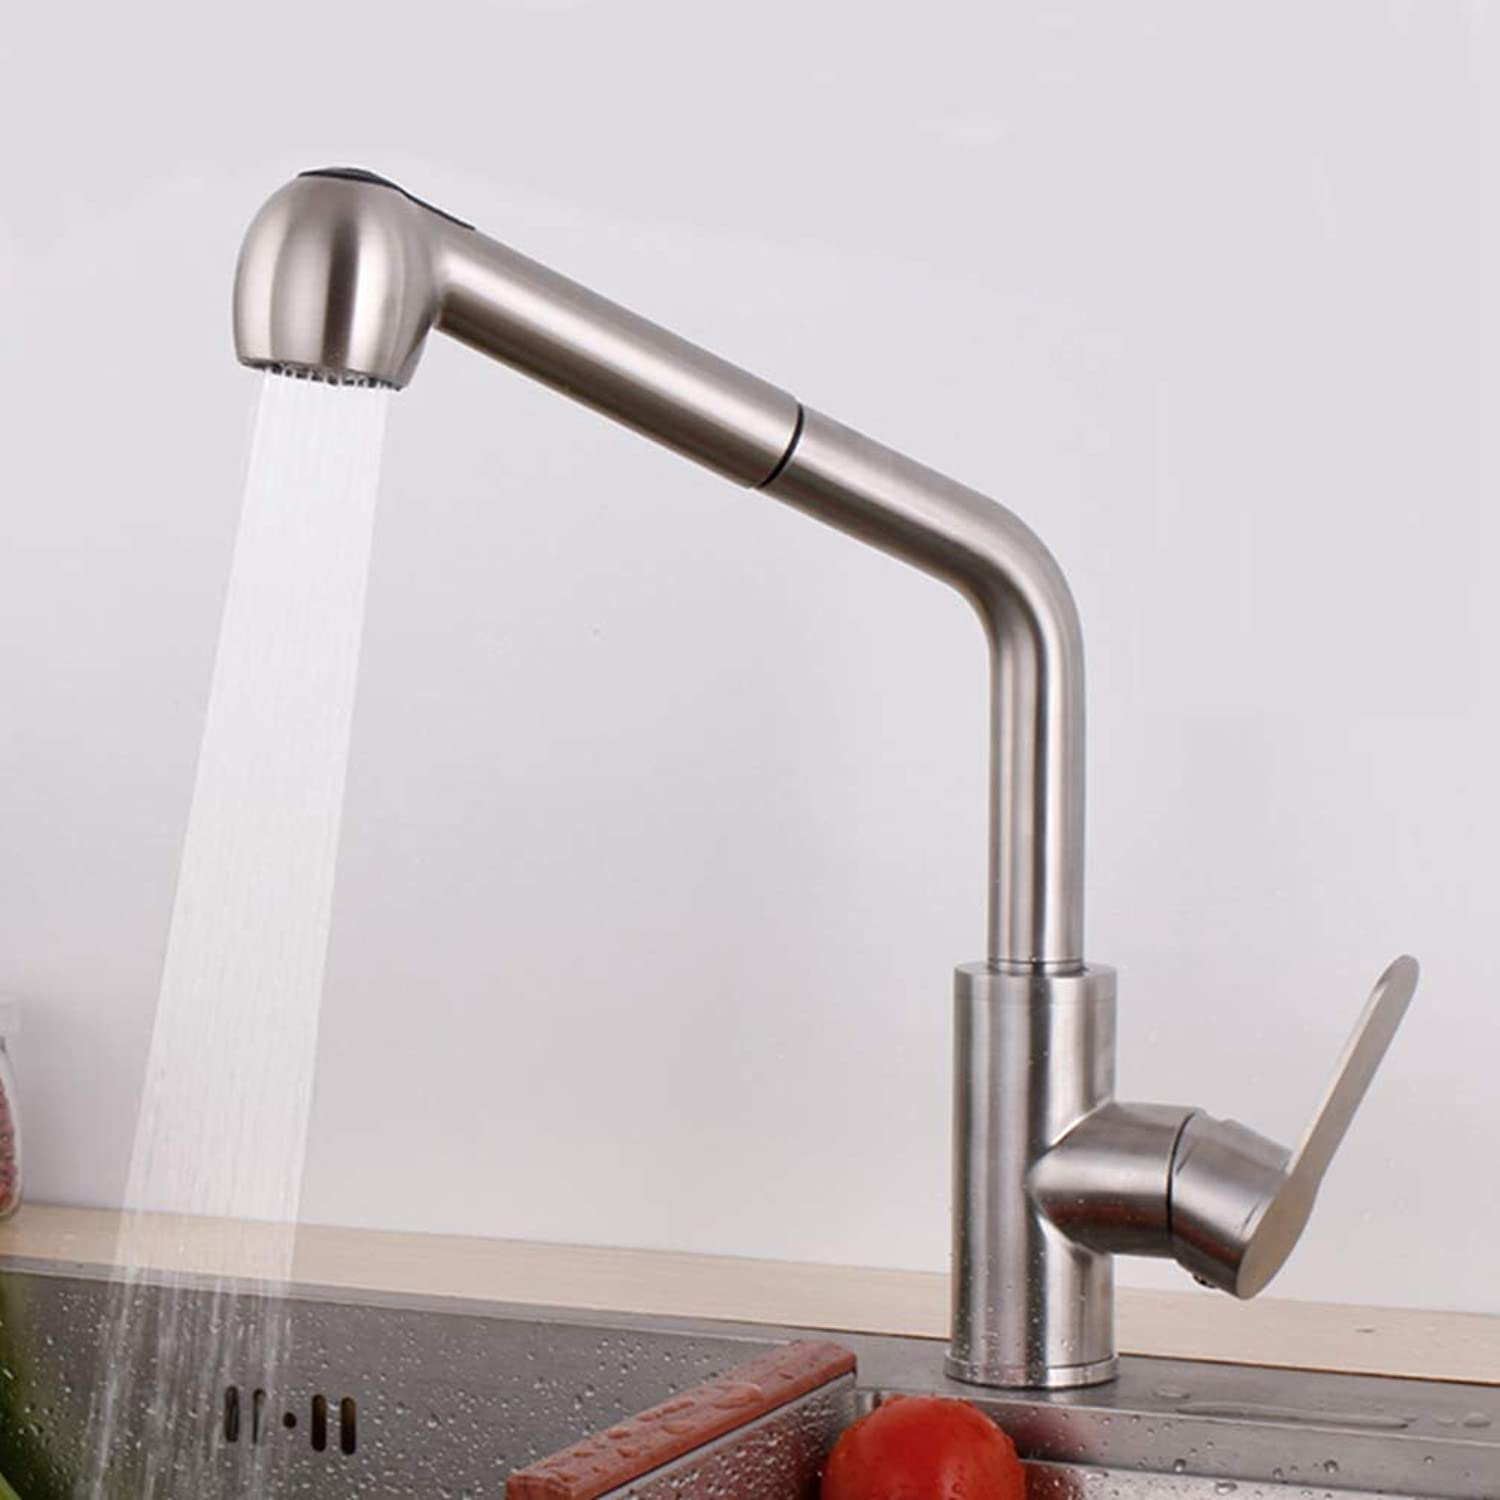 FZHLR Put Out Kitchen Faucet Mixer Tap 304 Stainless Steel Brushed Surface Hot and Cold Water Hand Holder Single Holder Single Hole Brushed